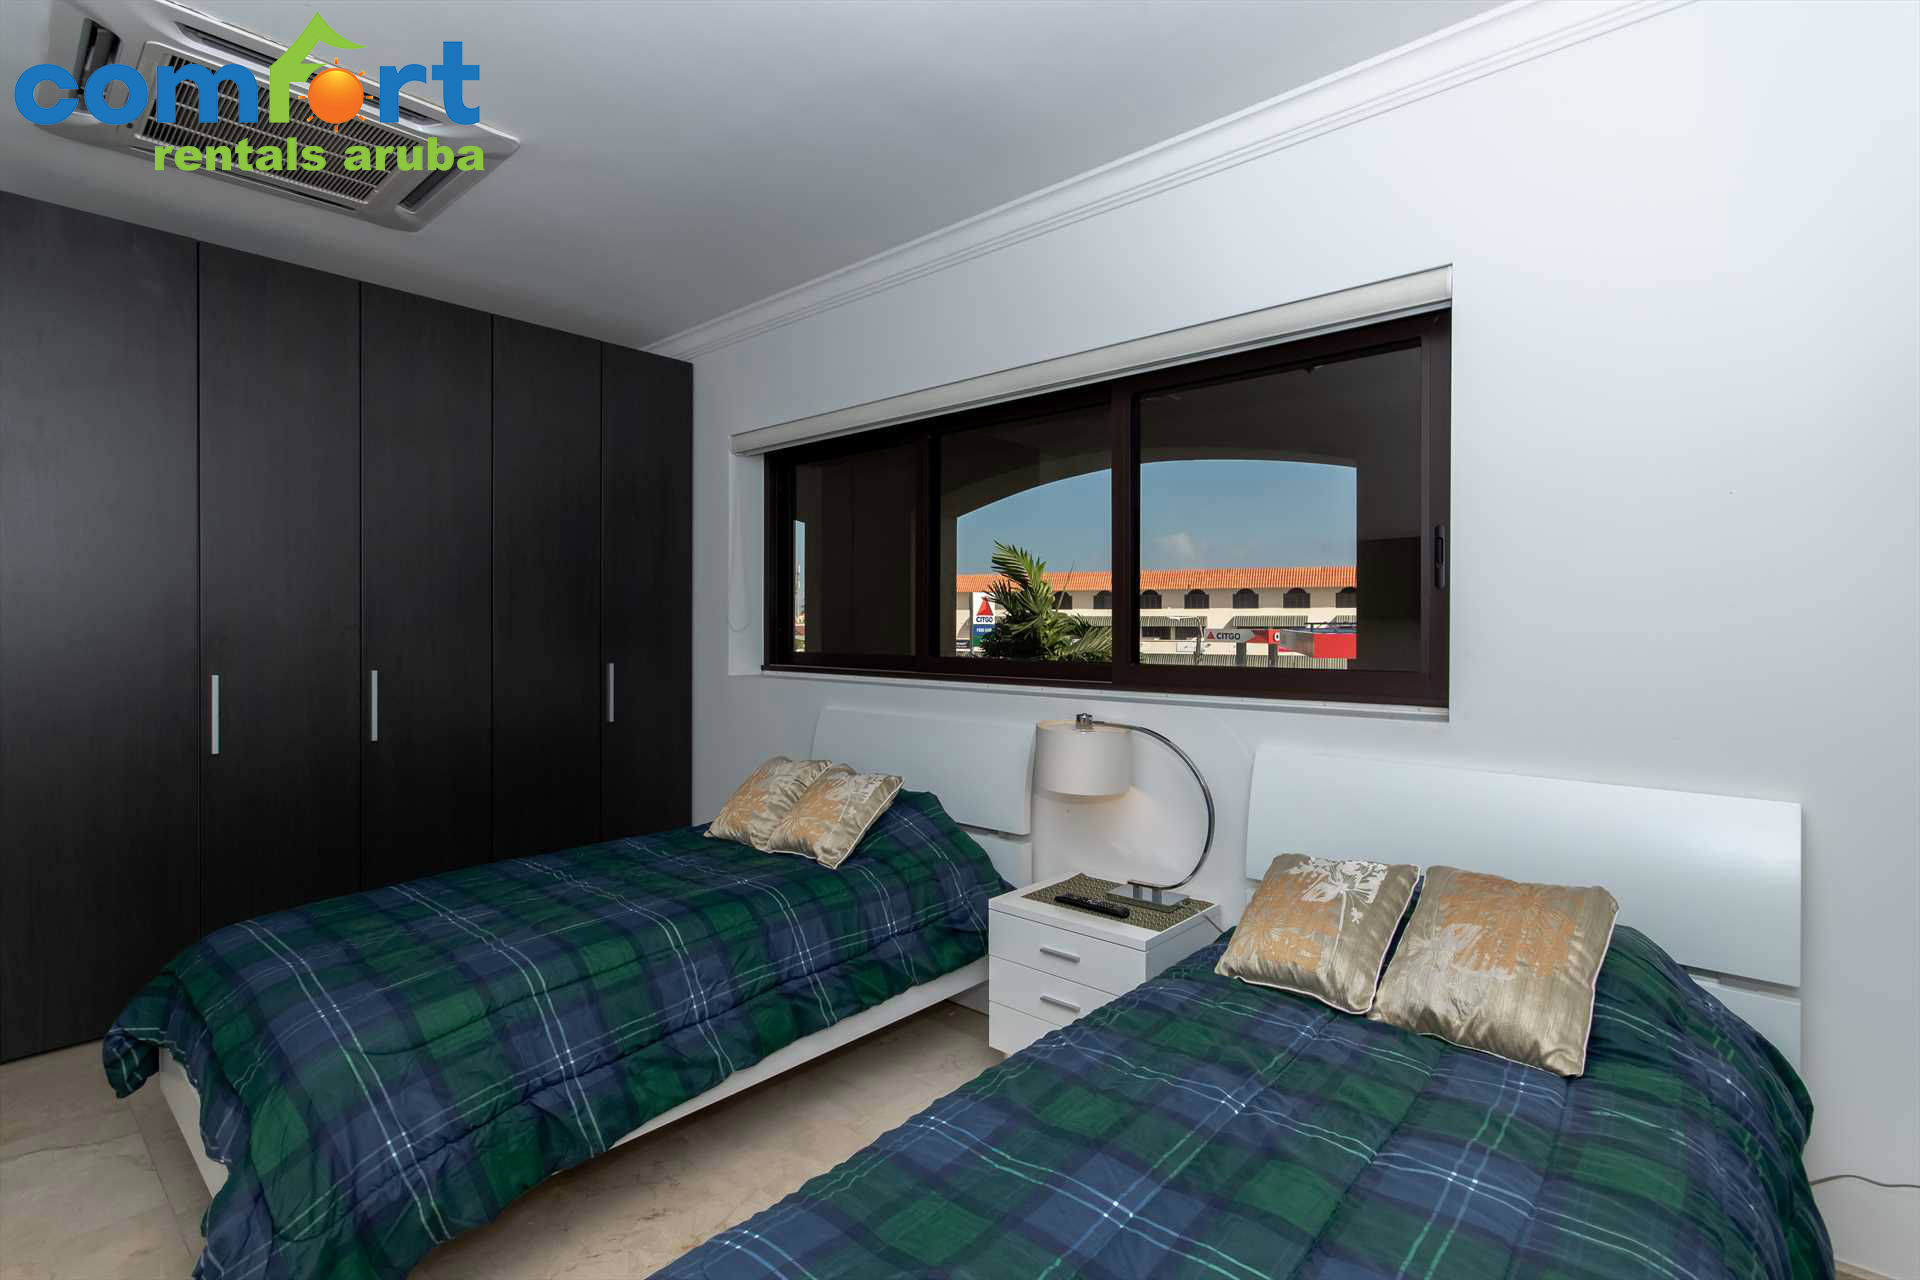 The second bedroom with two single beds and a built-in closet